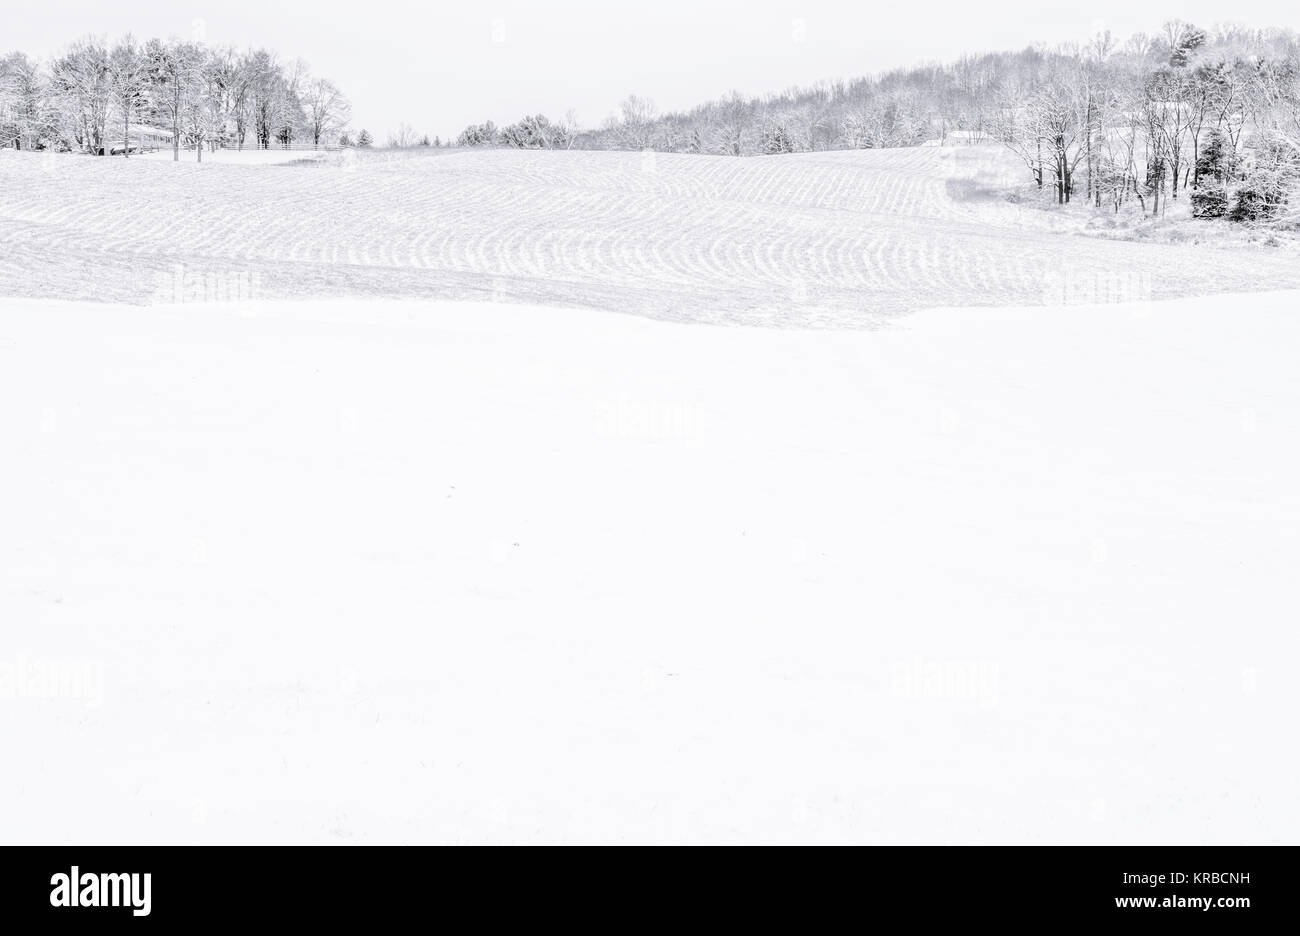 Black and white minimalist background of the winter field in rural New Jersey - Stock Image